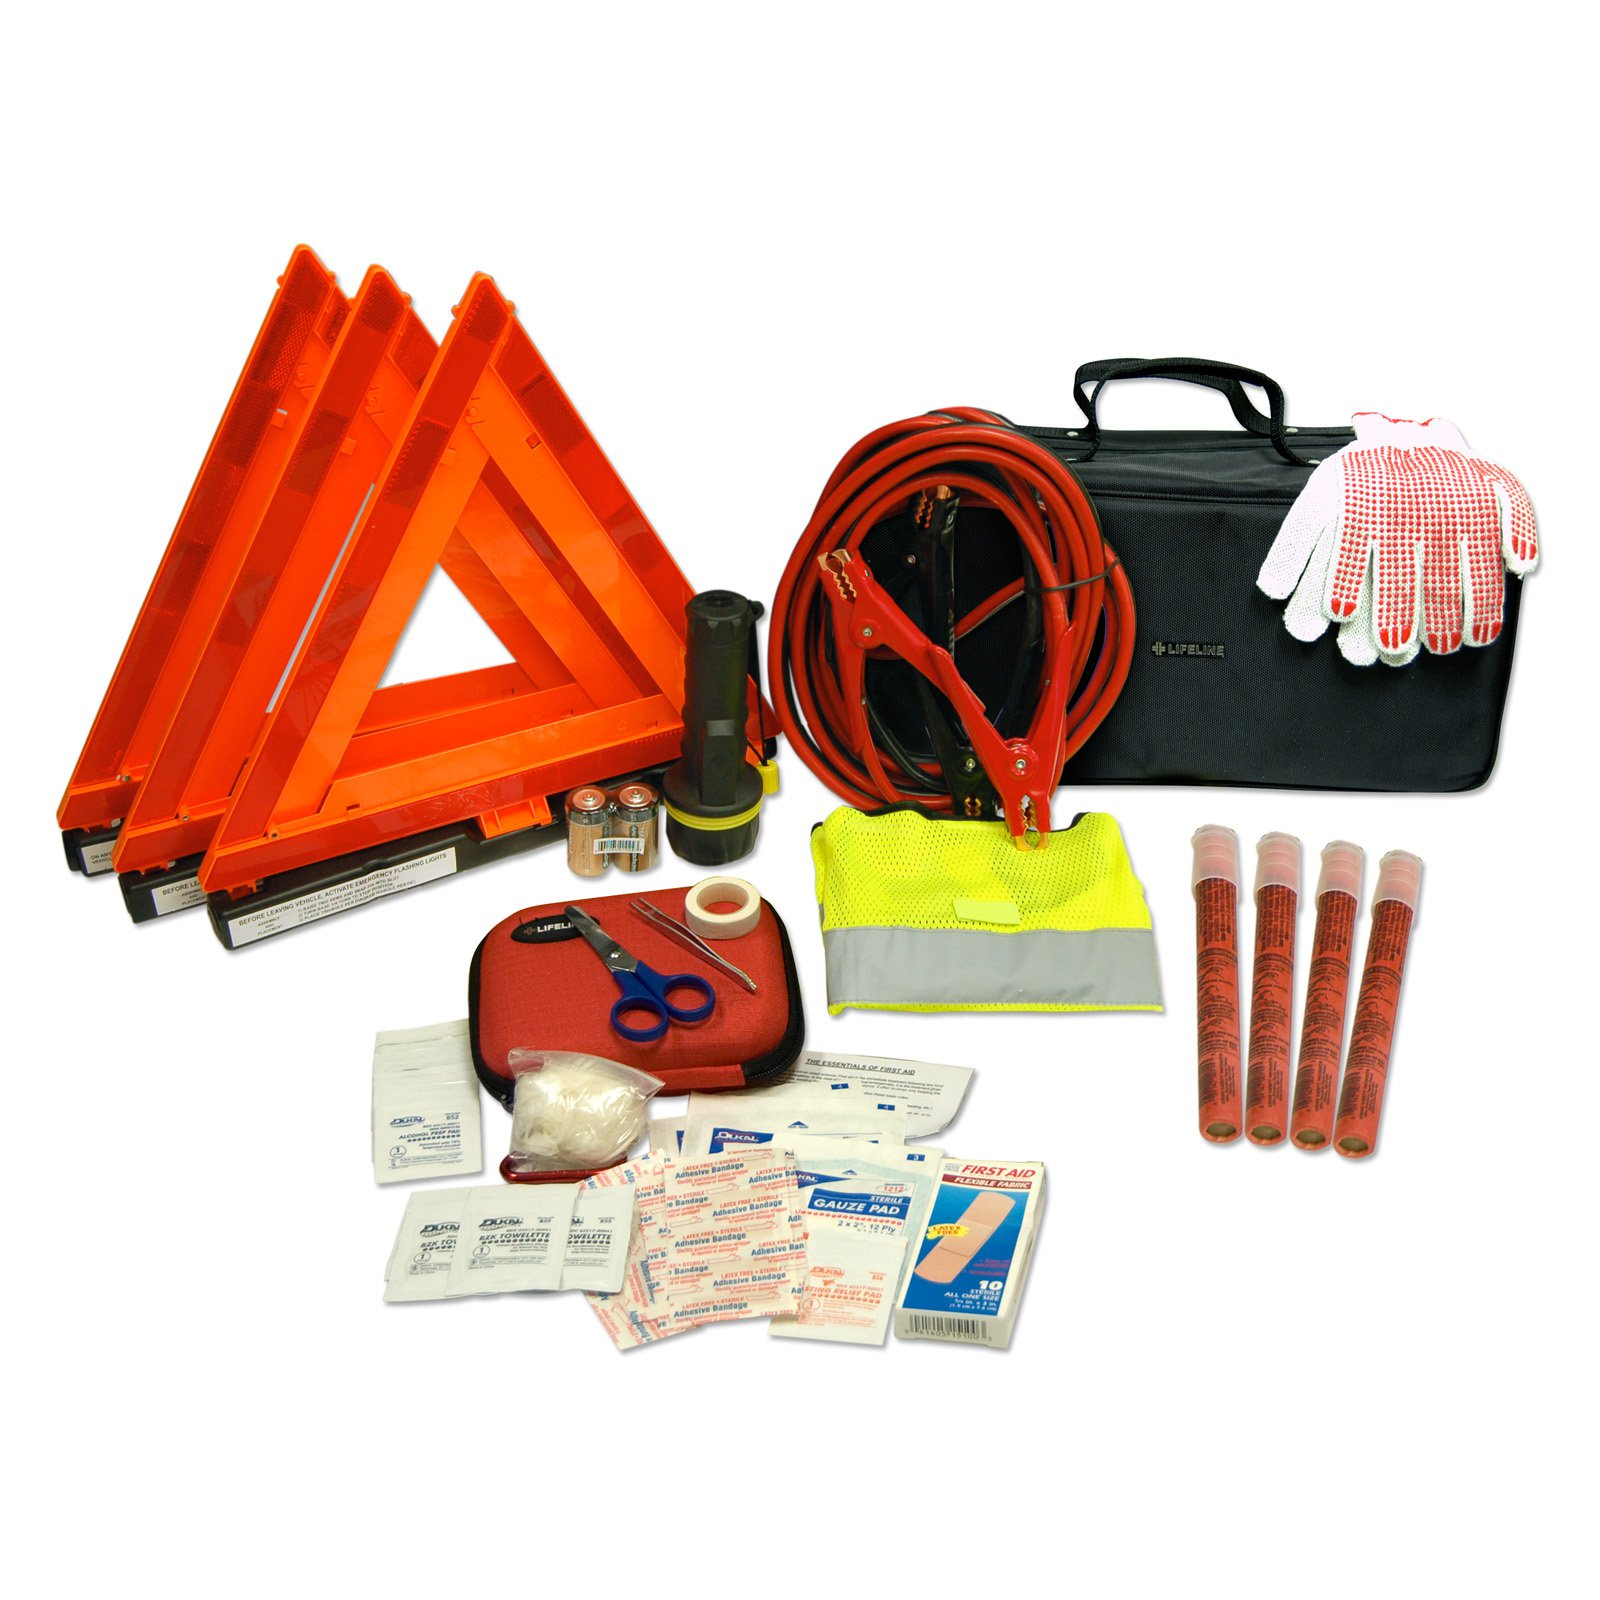 Lifeline Truck Road First Aid Kit - 67 Pieces